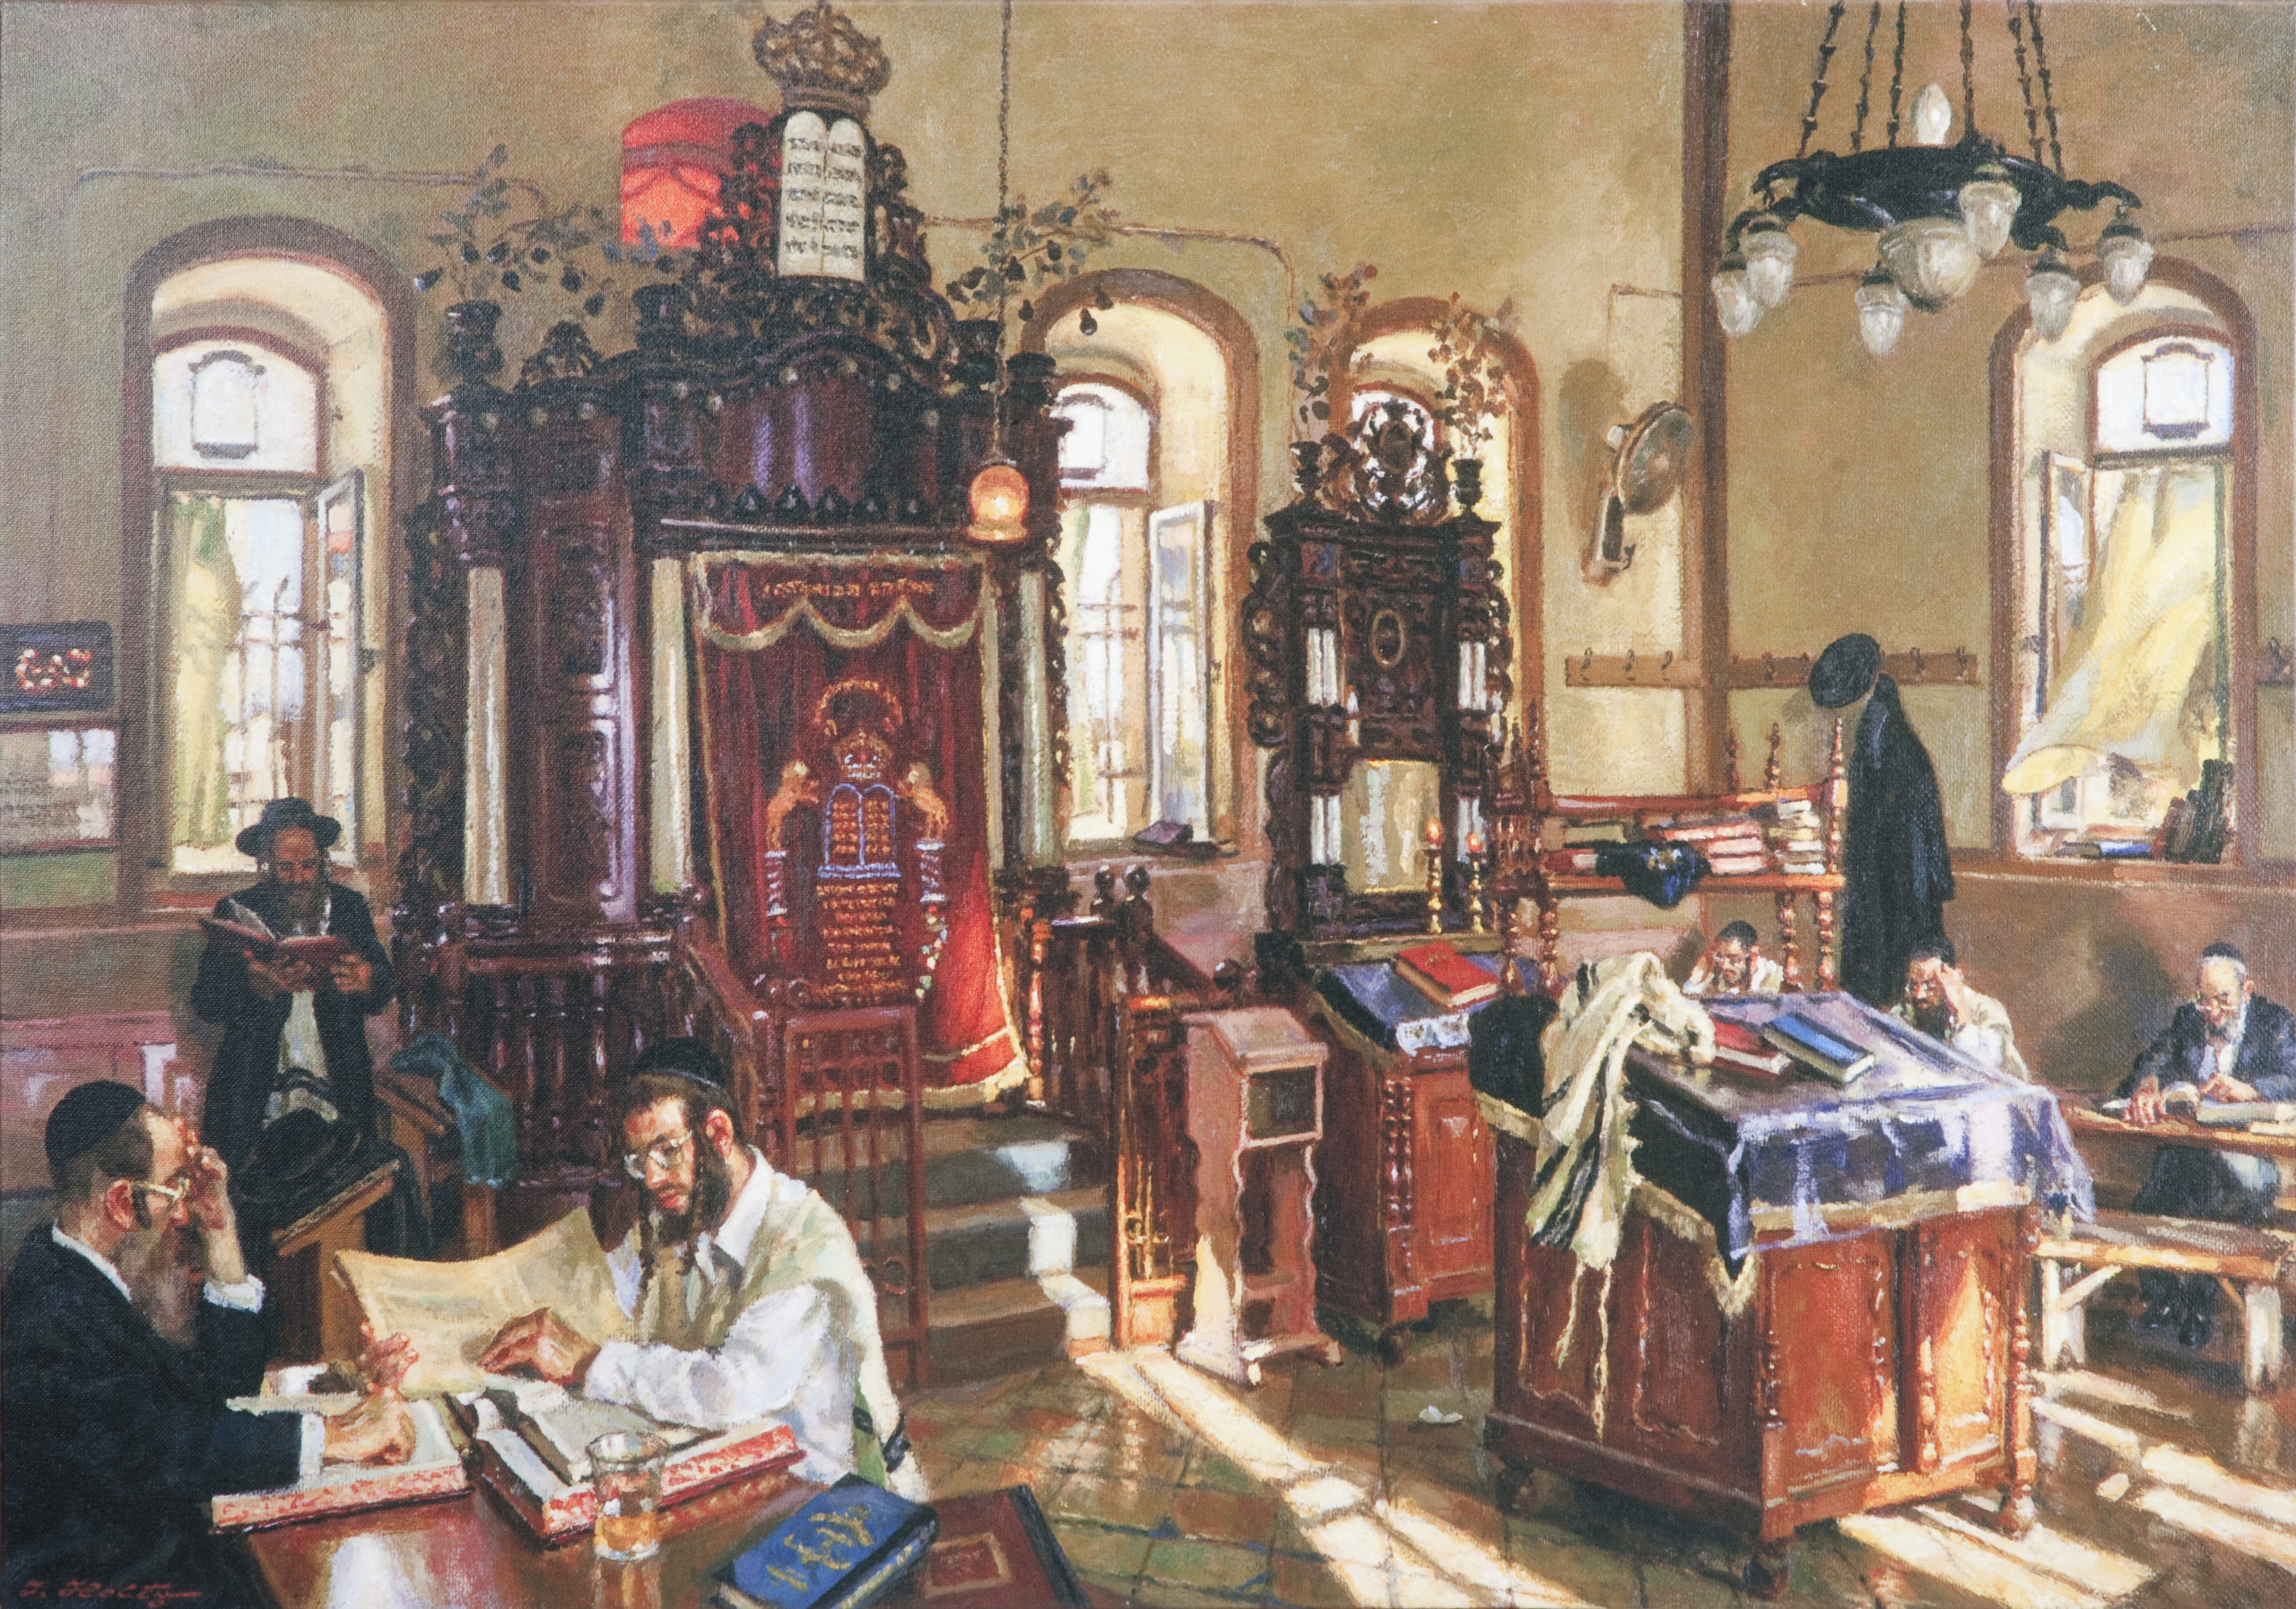 L84 Beit Knesset - Giclee - Lithograph - 35 x 24 - No Frame - $890